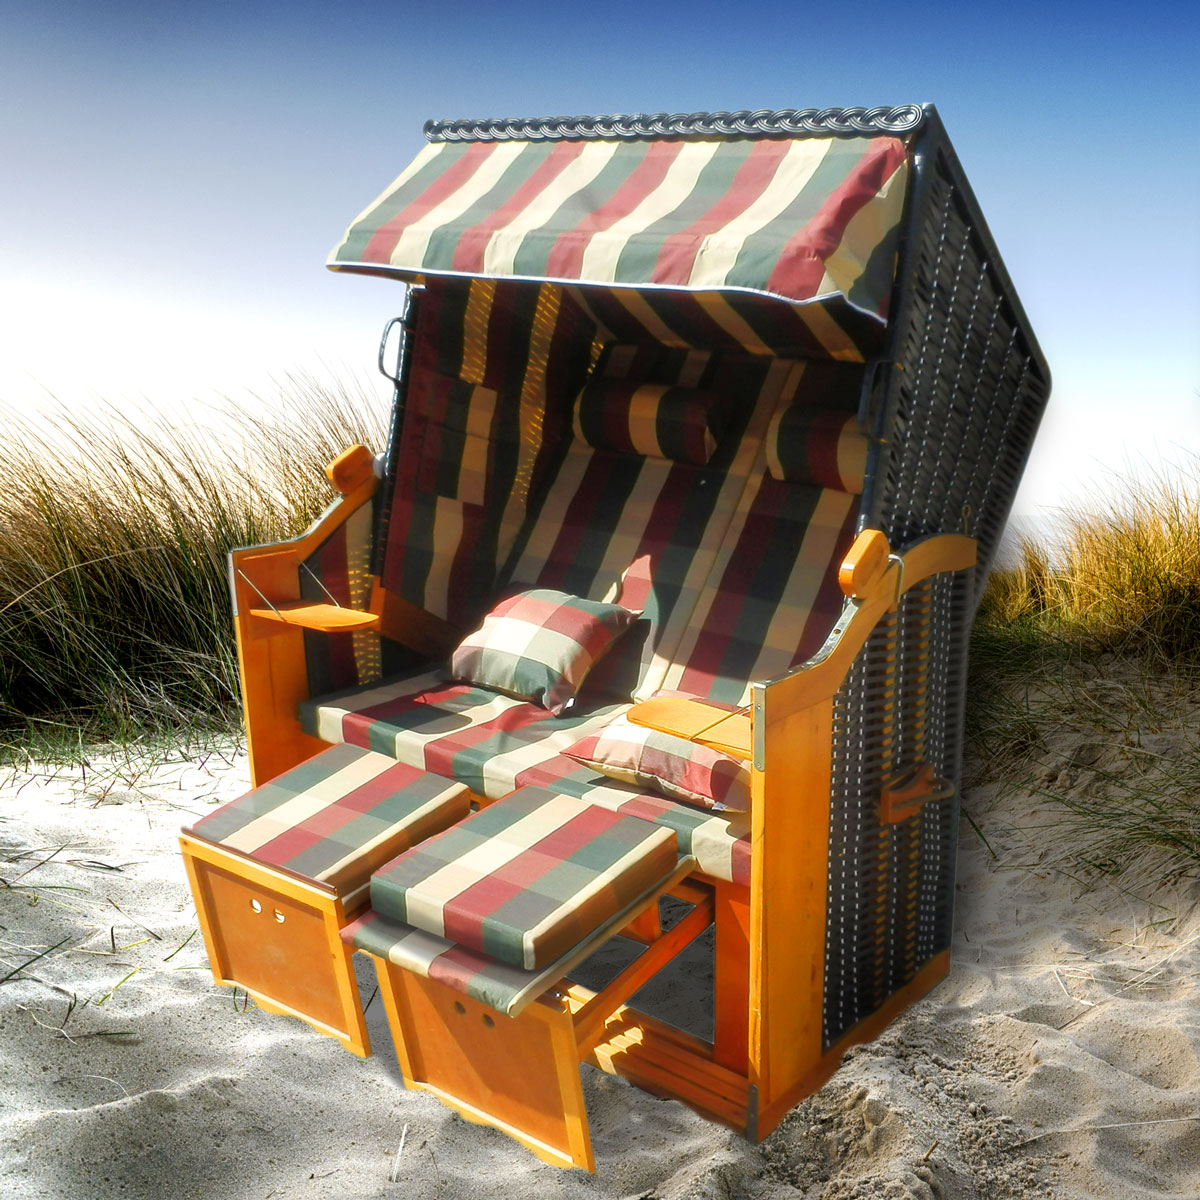 strandkorb premium volllieger ostsee gartenliege sonneninsel poly rattan xxl ebay. Black Bedroom Furniture Sets. Home Design Ideas